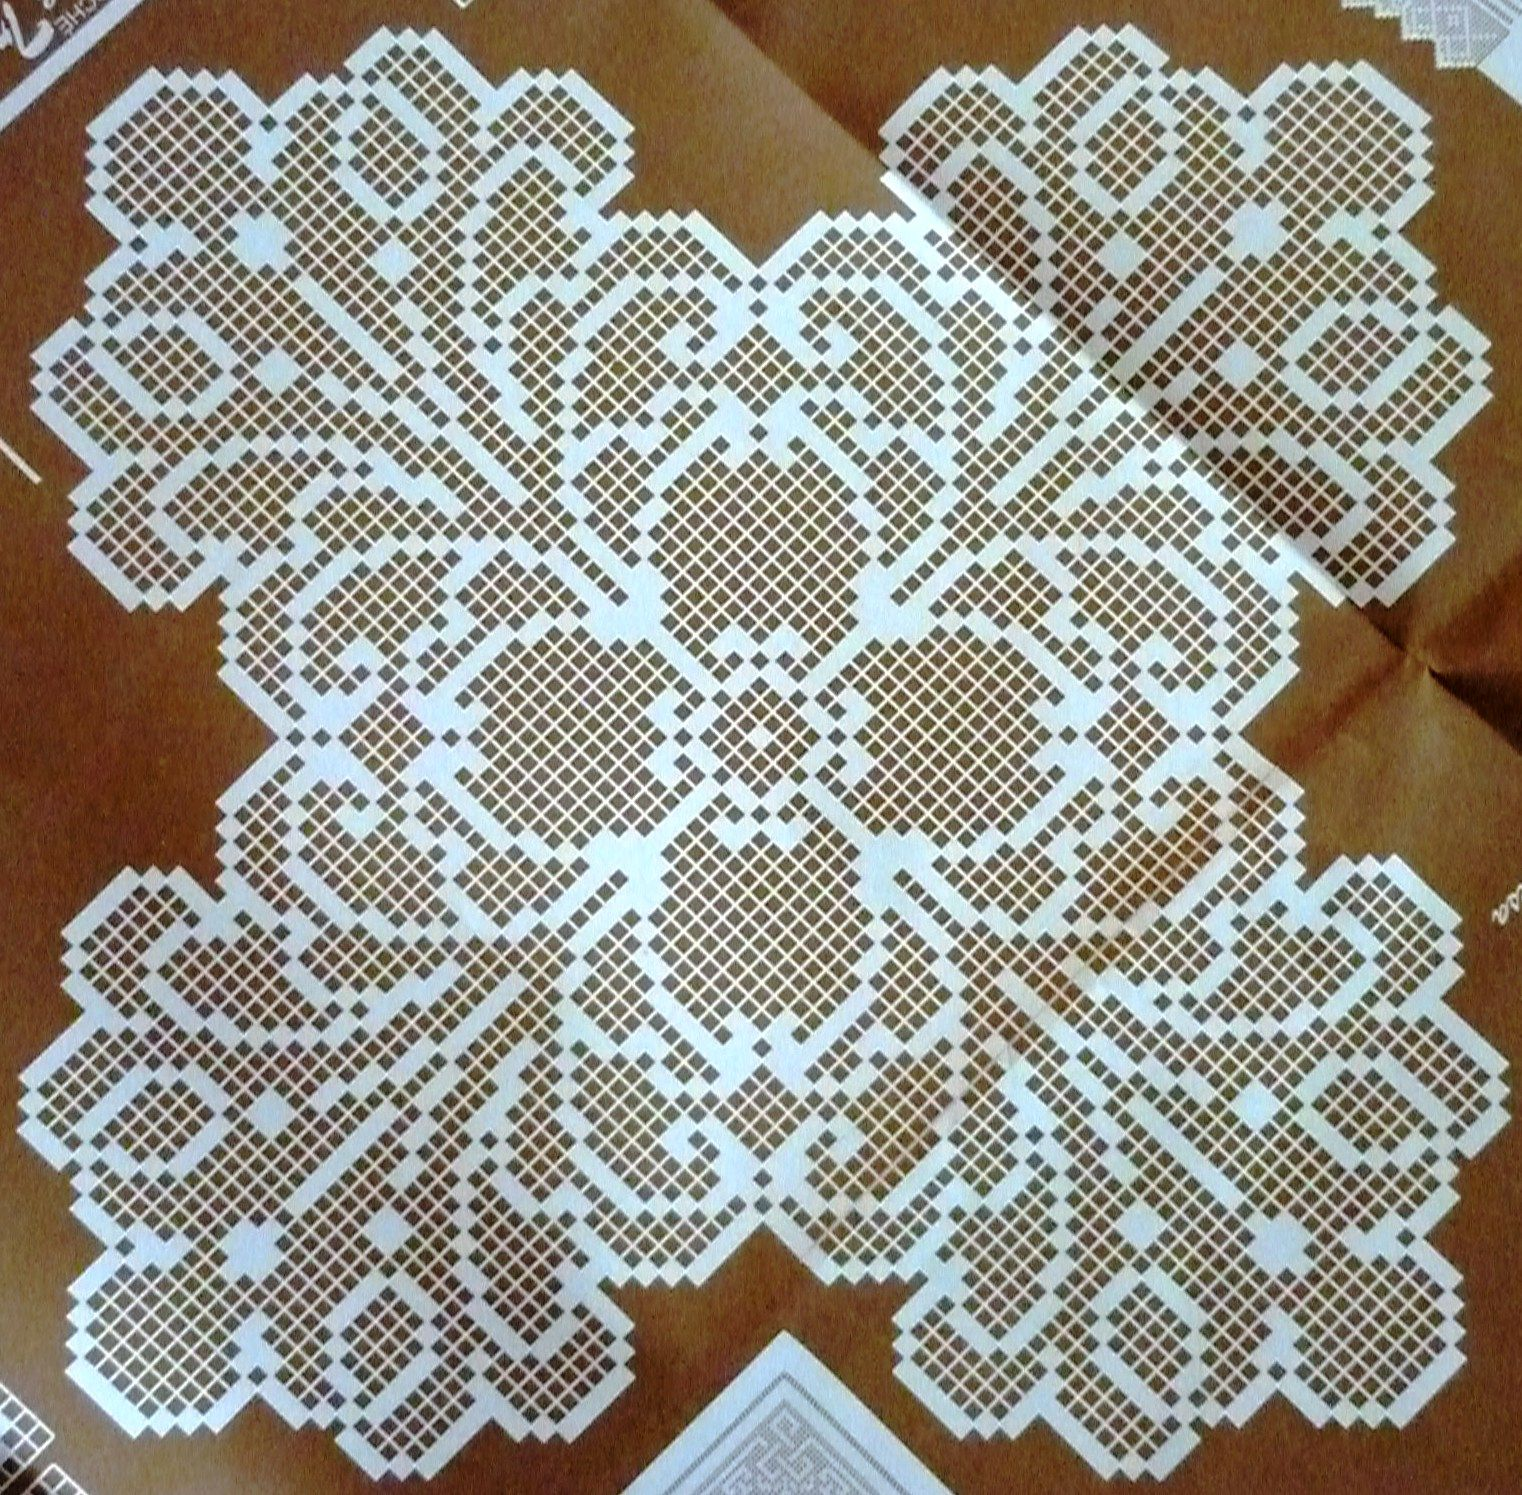 Filet Crochet Patterns For Home Decor Crochet Em Revista Crochet Filet Crochet And Crochet